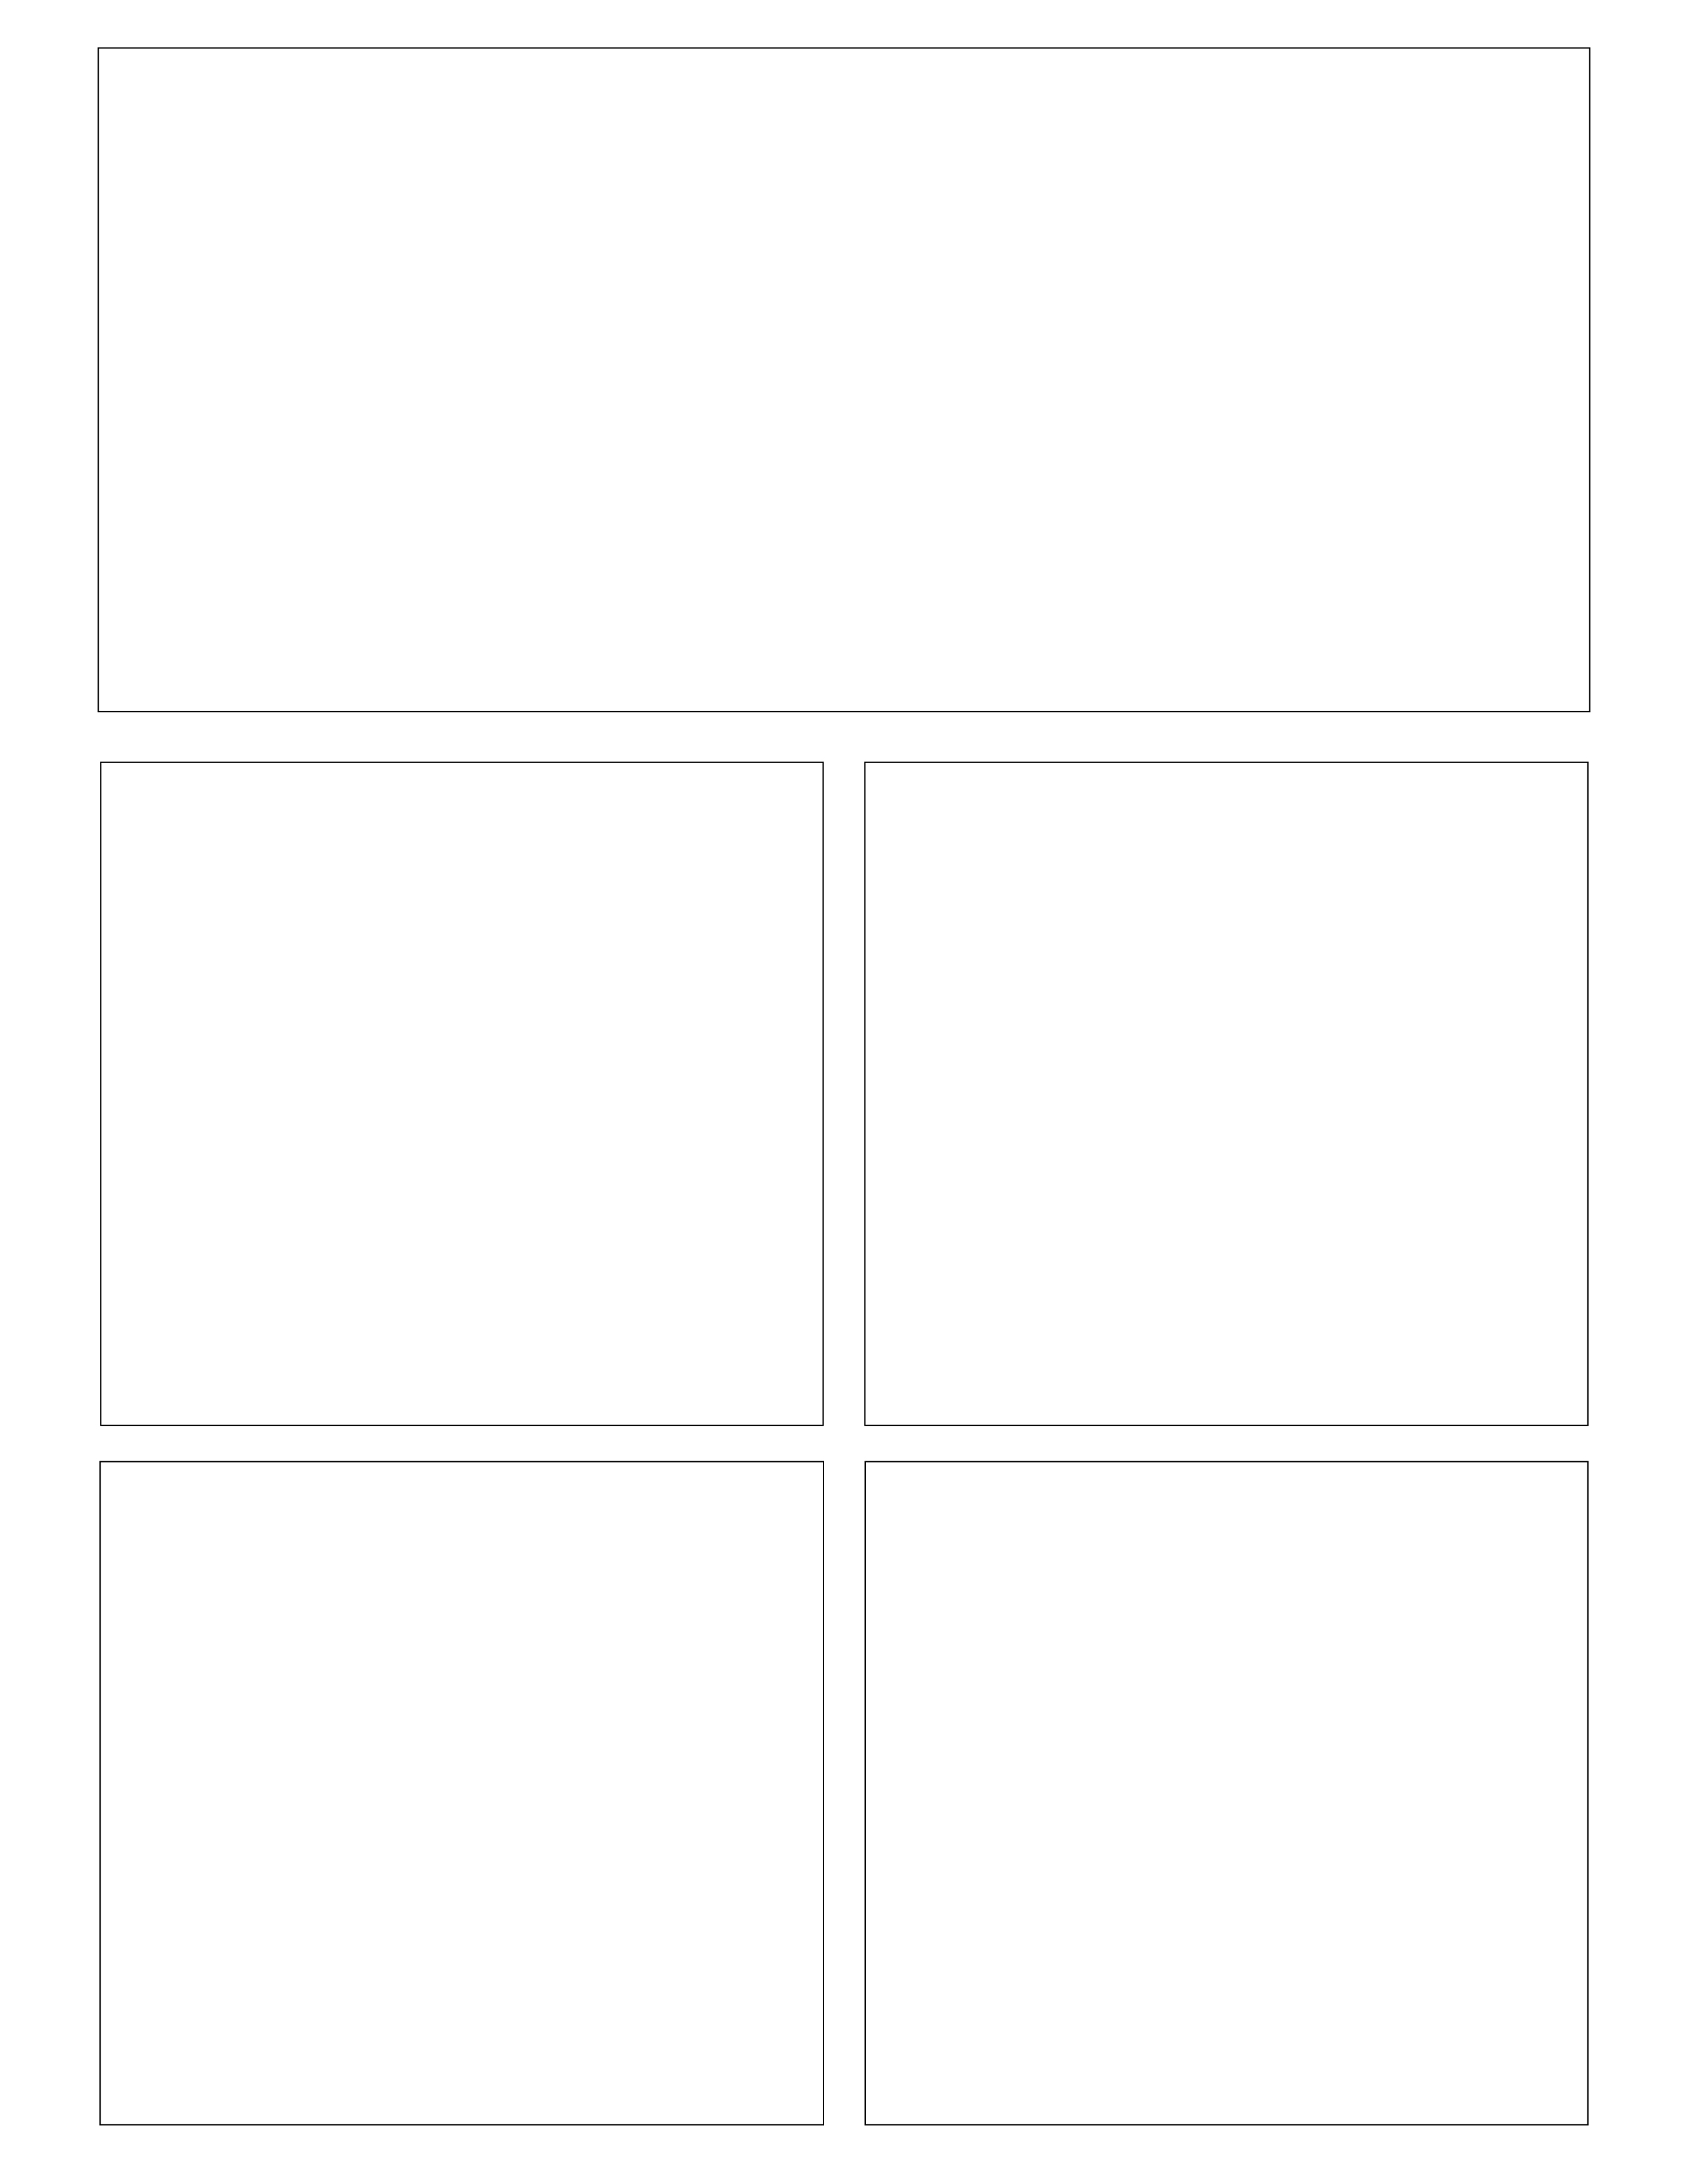 Comic book panel template eliolera blank comic page 3 by c0nn0rman43iantart on deviantart pronofoot35fo Gallery